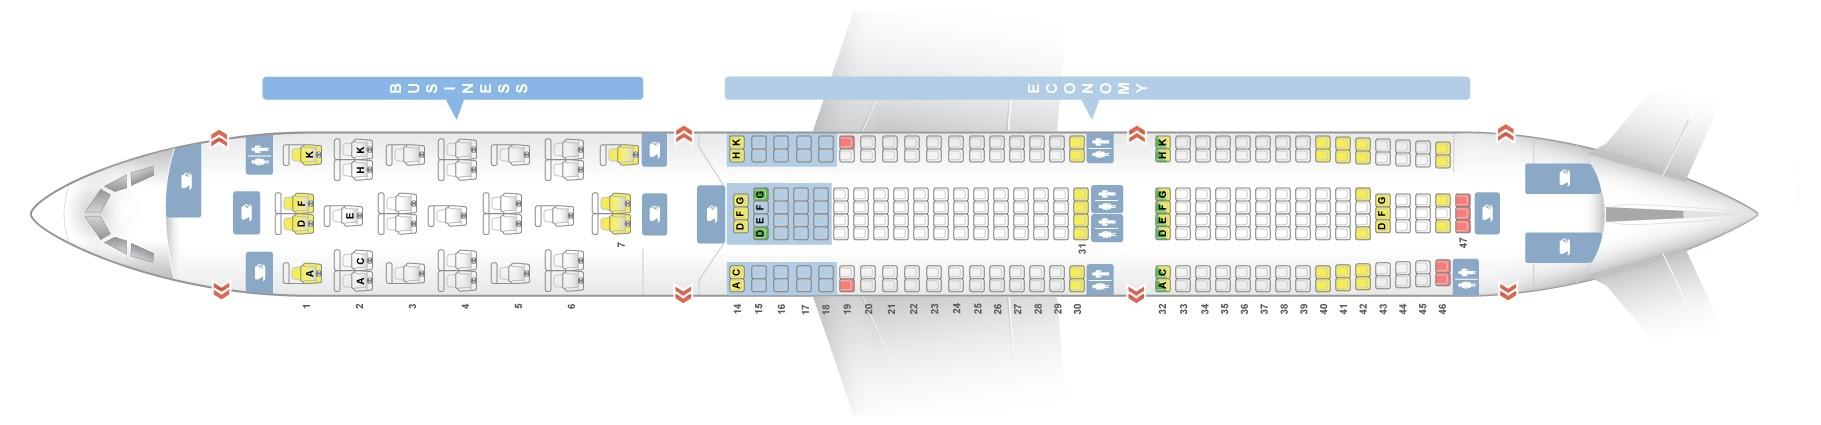 "Seat map Airbus A330-300 ""Brussels Airlines"". Best seats in the plane"